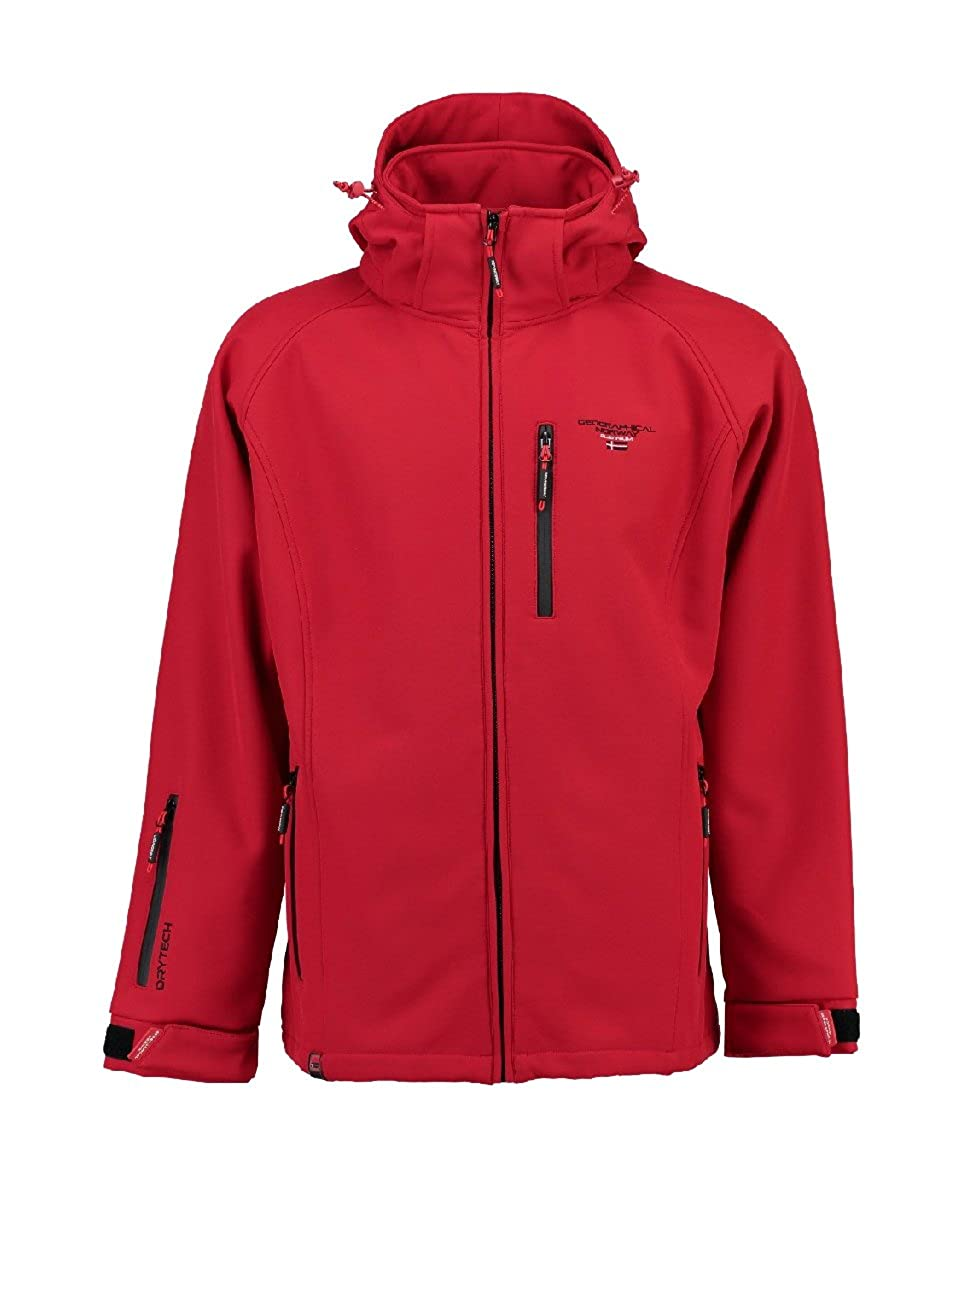 Geographical Norway Herren Parka Tornado, Rot M M Rot d3c3c1